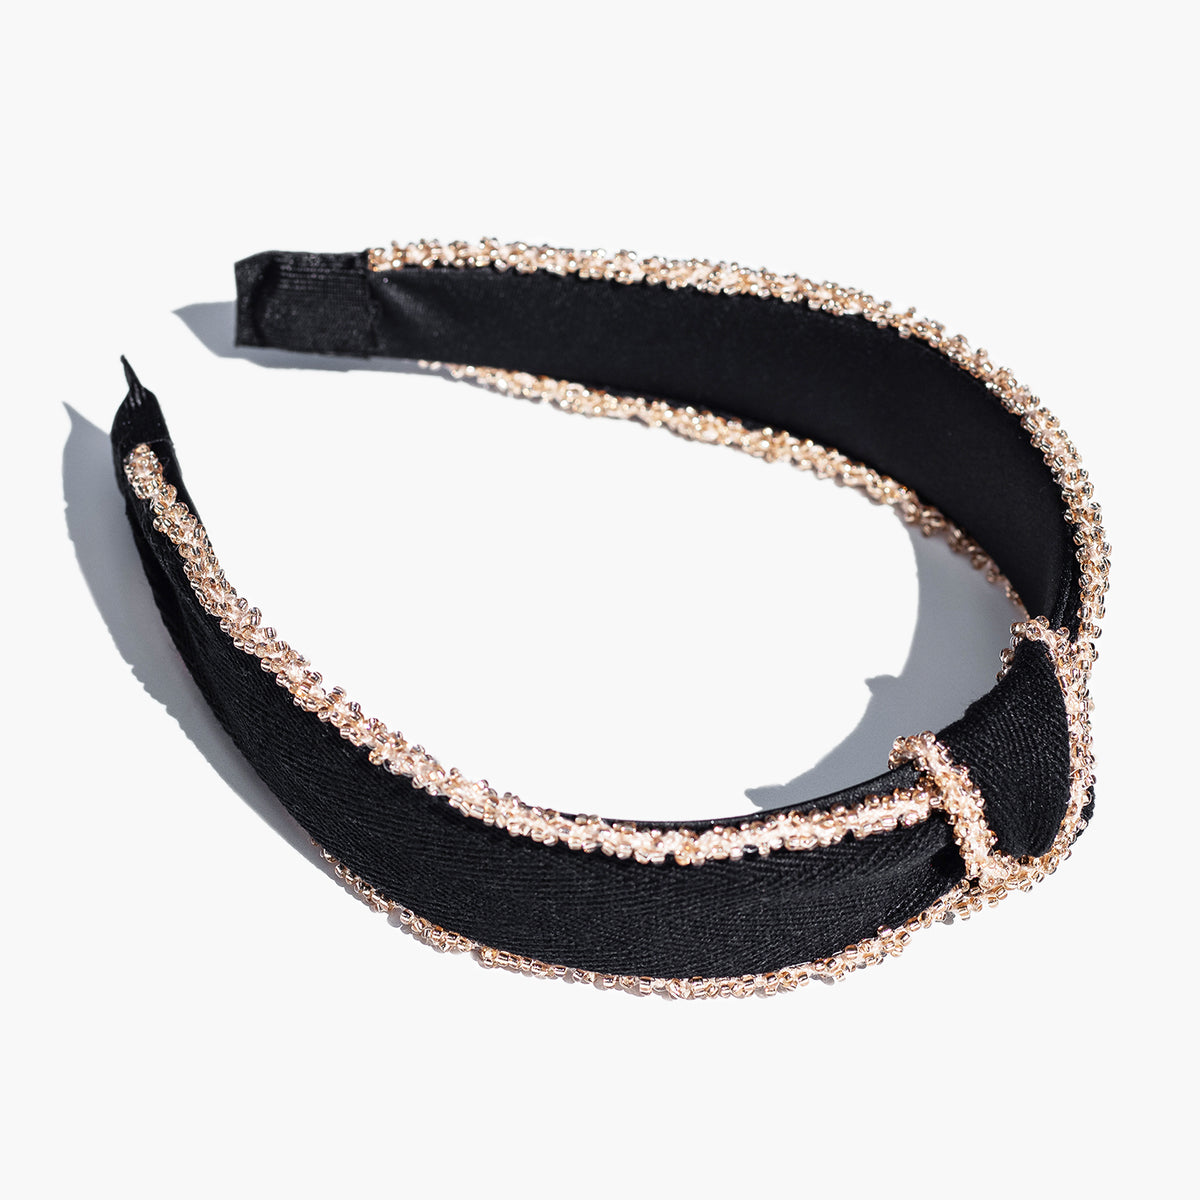 Headbands by IDALIA - Margot - Rose Gold Trim